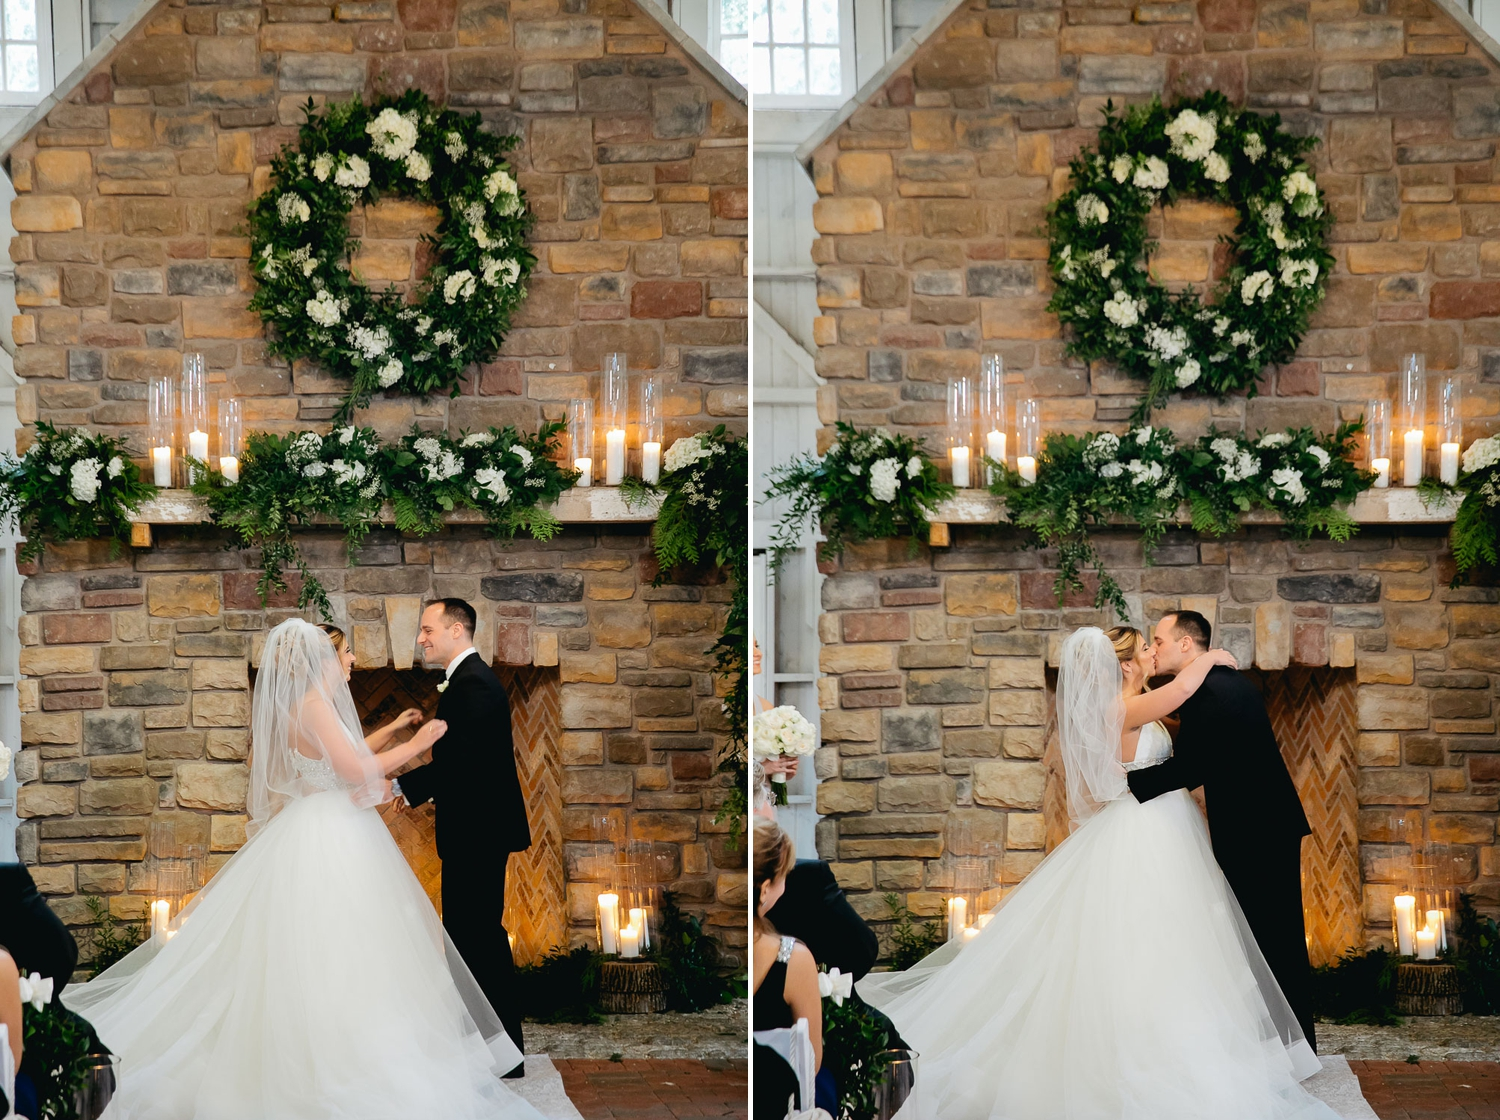 Winter wedding inspiration that will get any bride or groom excited for their own big day!! Read the blog for tips how to make your winter wedding unique and different from all the rest!